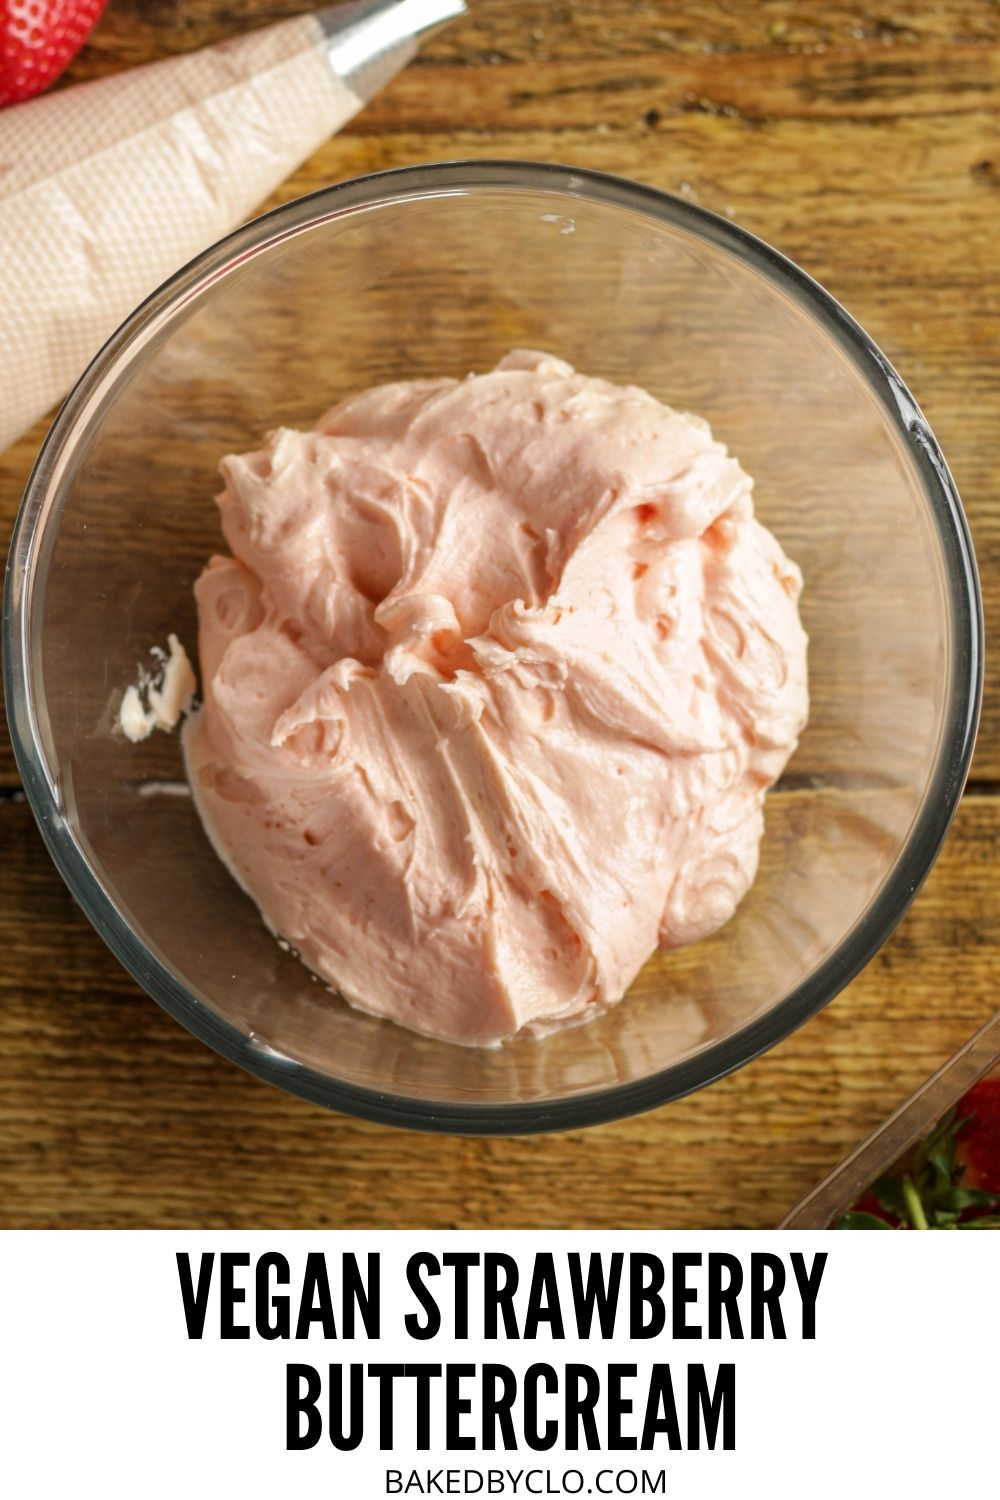 Pinterest pin for strawberry buttercream - a bowl of pink buttercream frosting